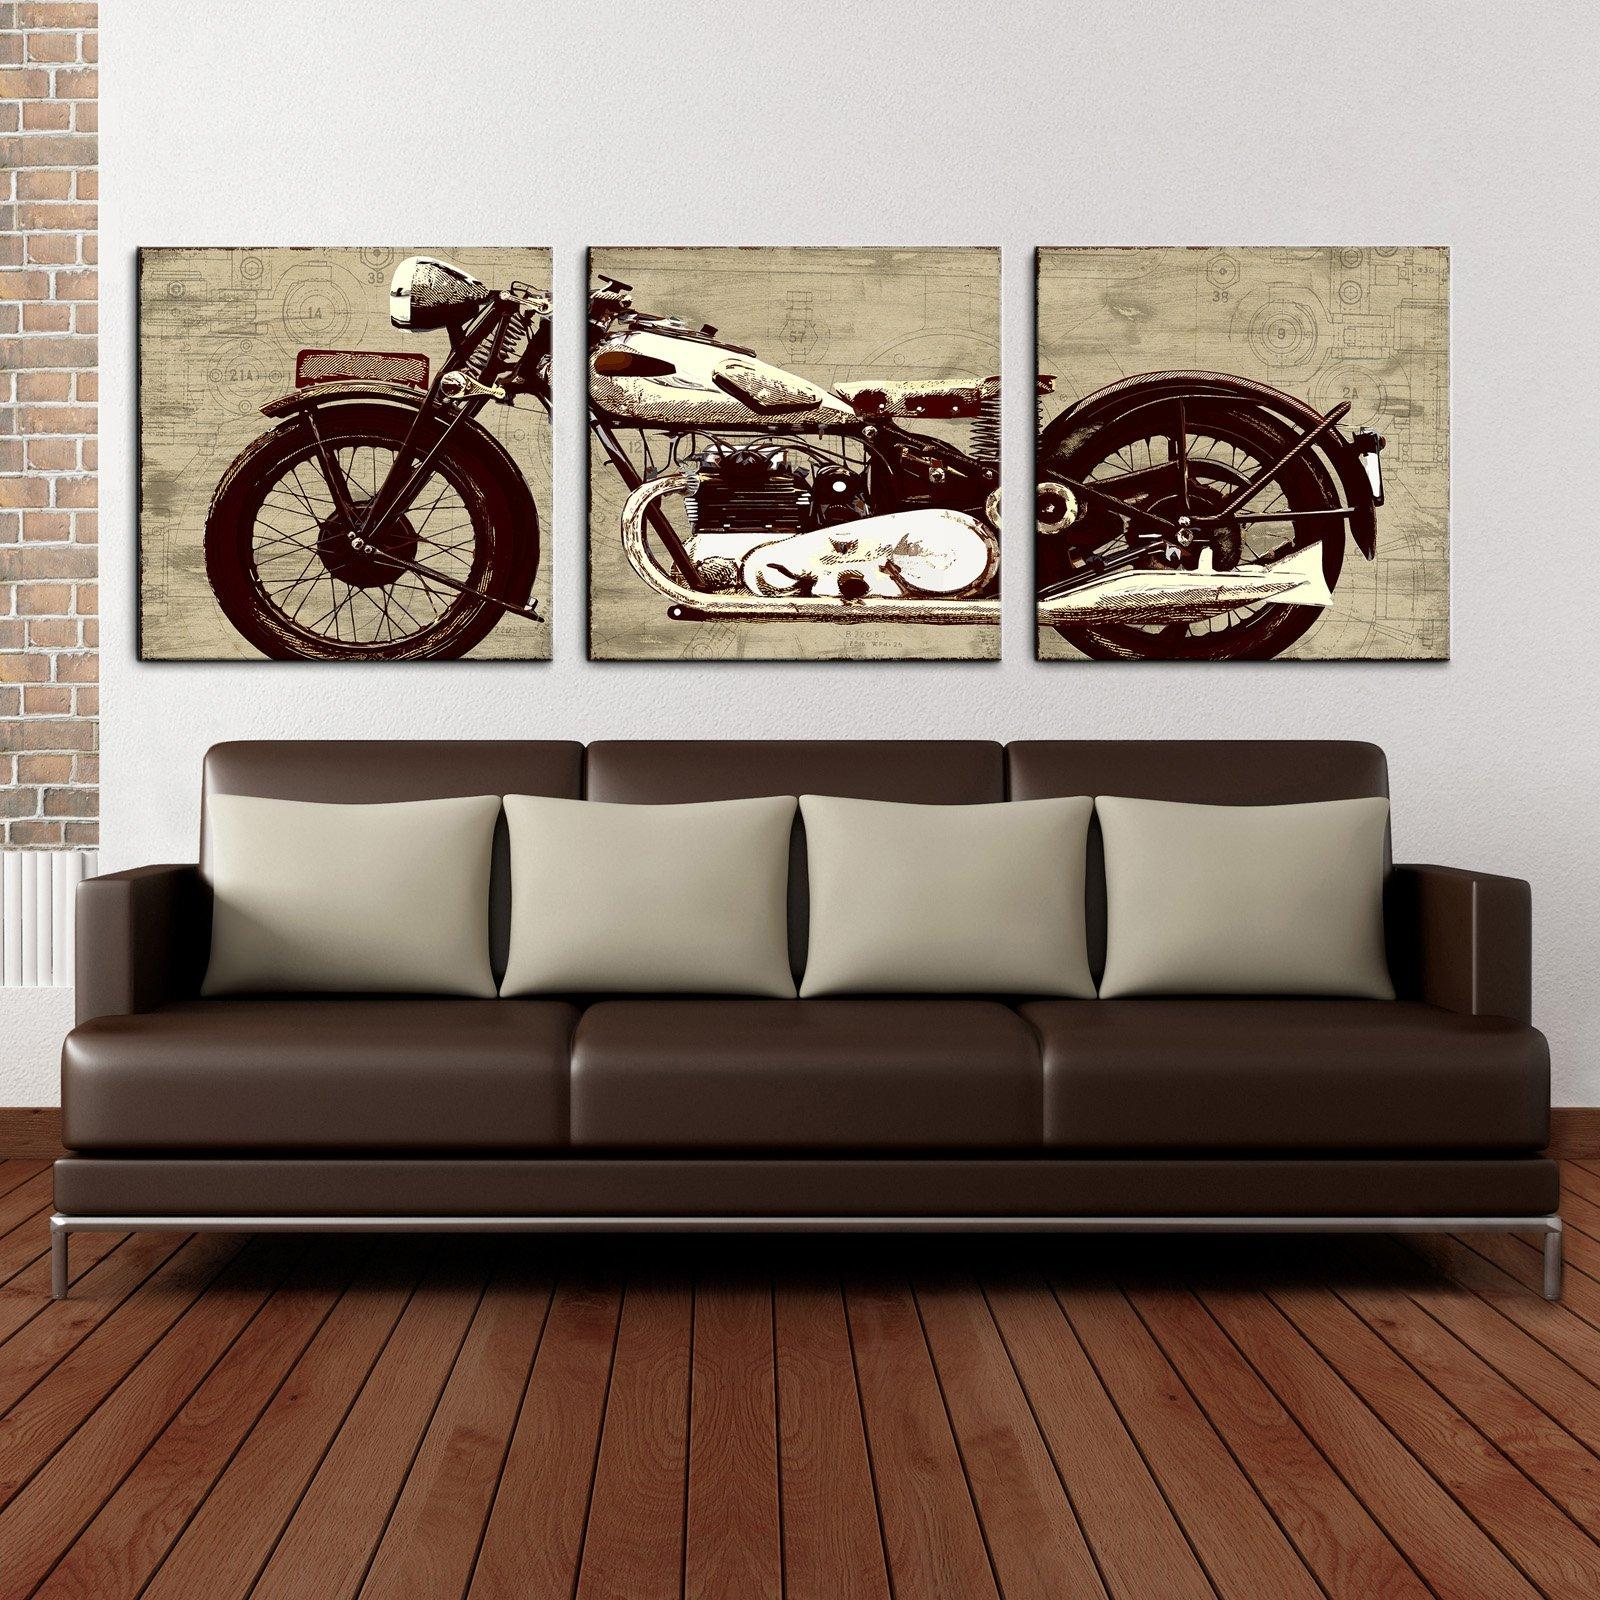 Motorcycle 24 X 72 Canvas Art Print Triptych – Walmart With Regard To Three Piece Canvas Wall Art (View 18 of 20)